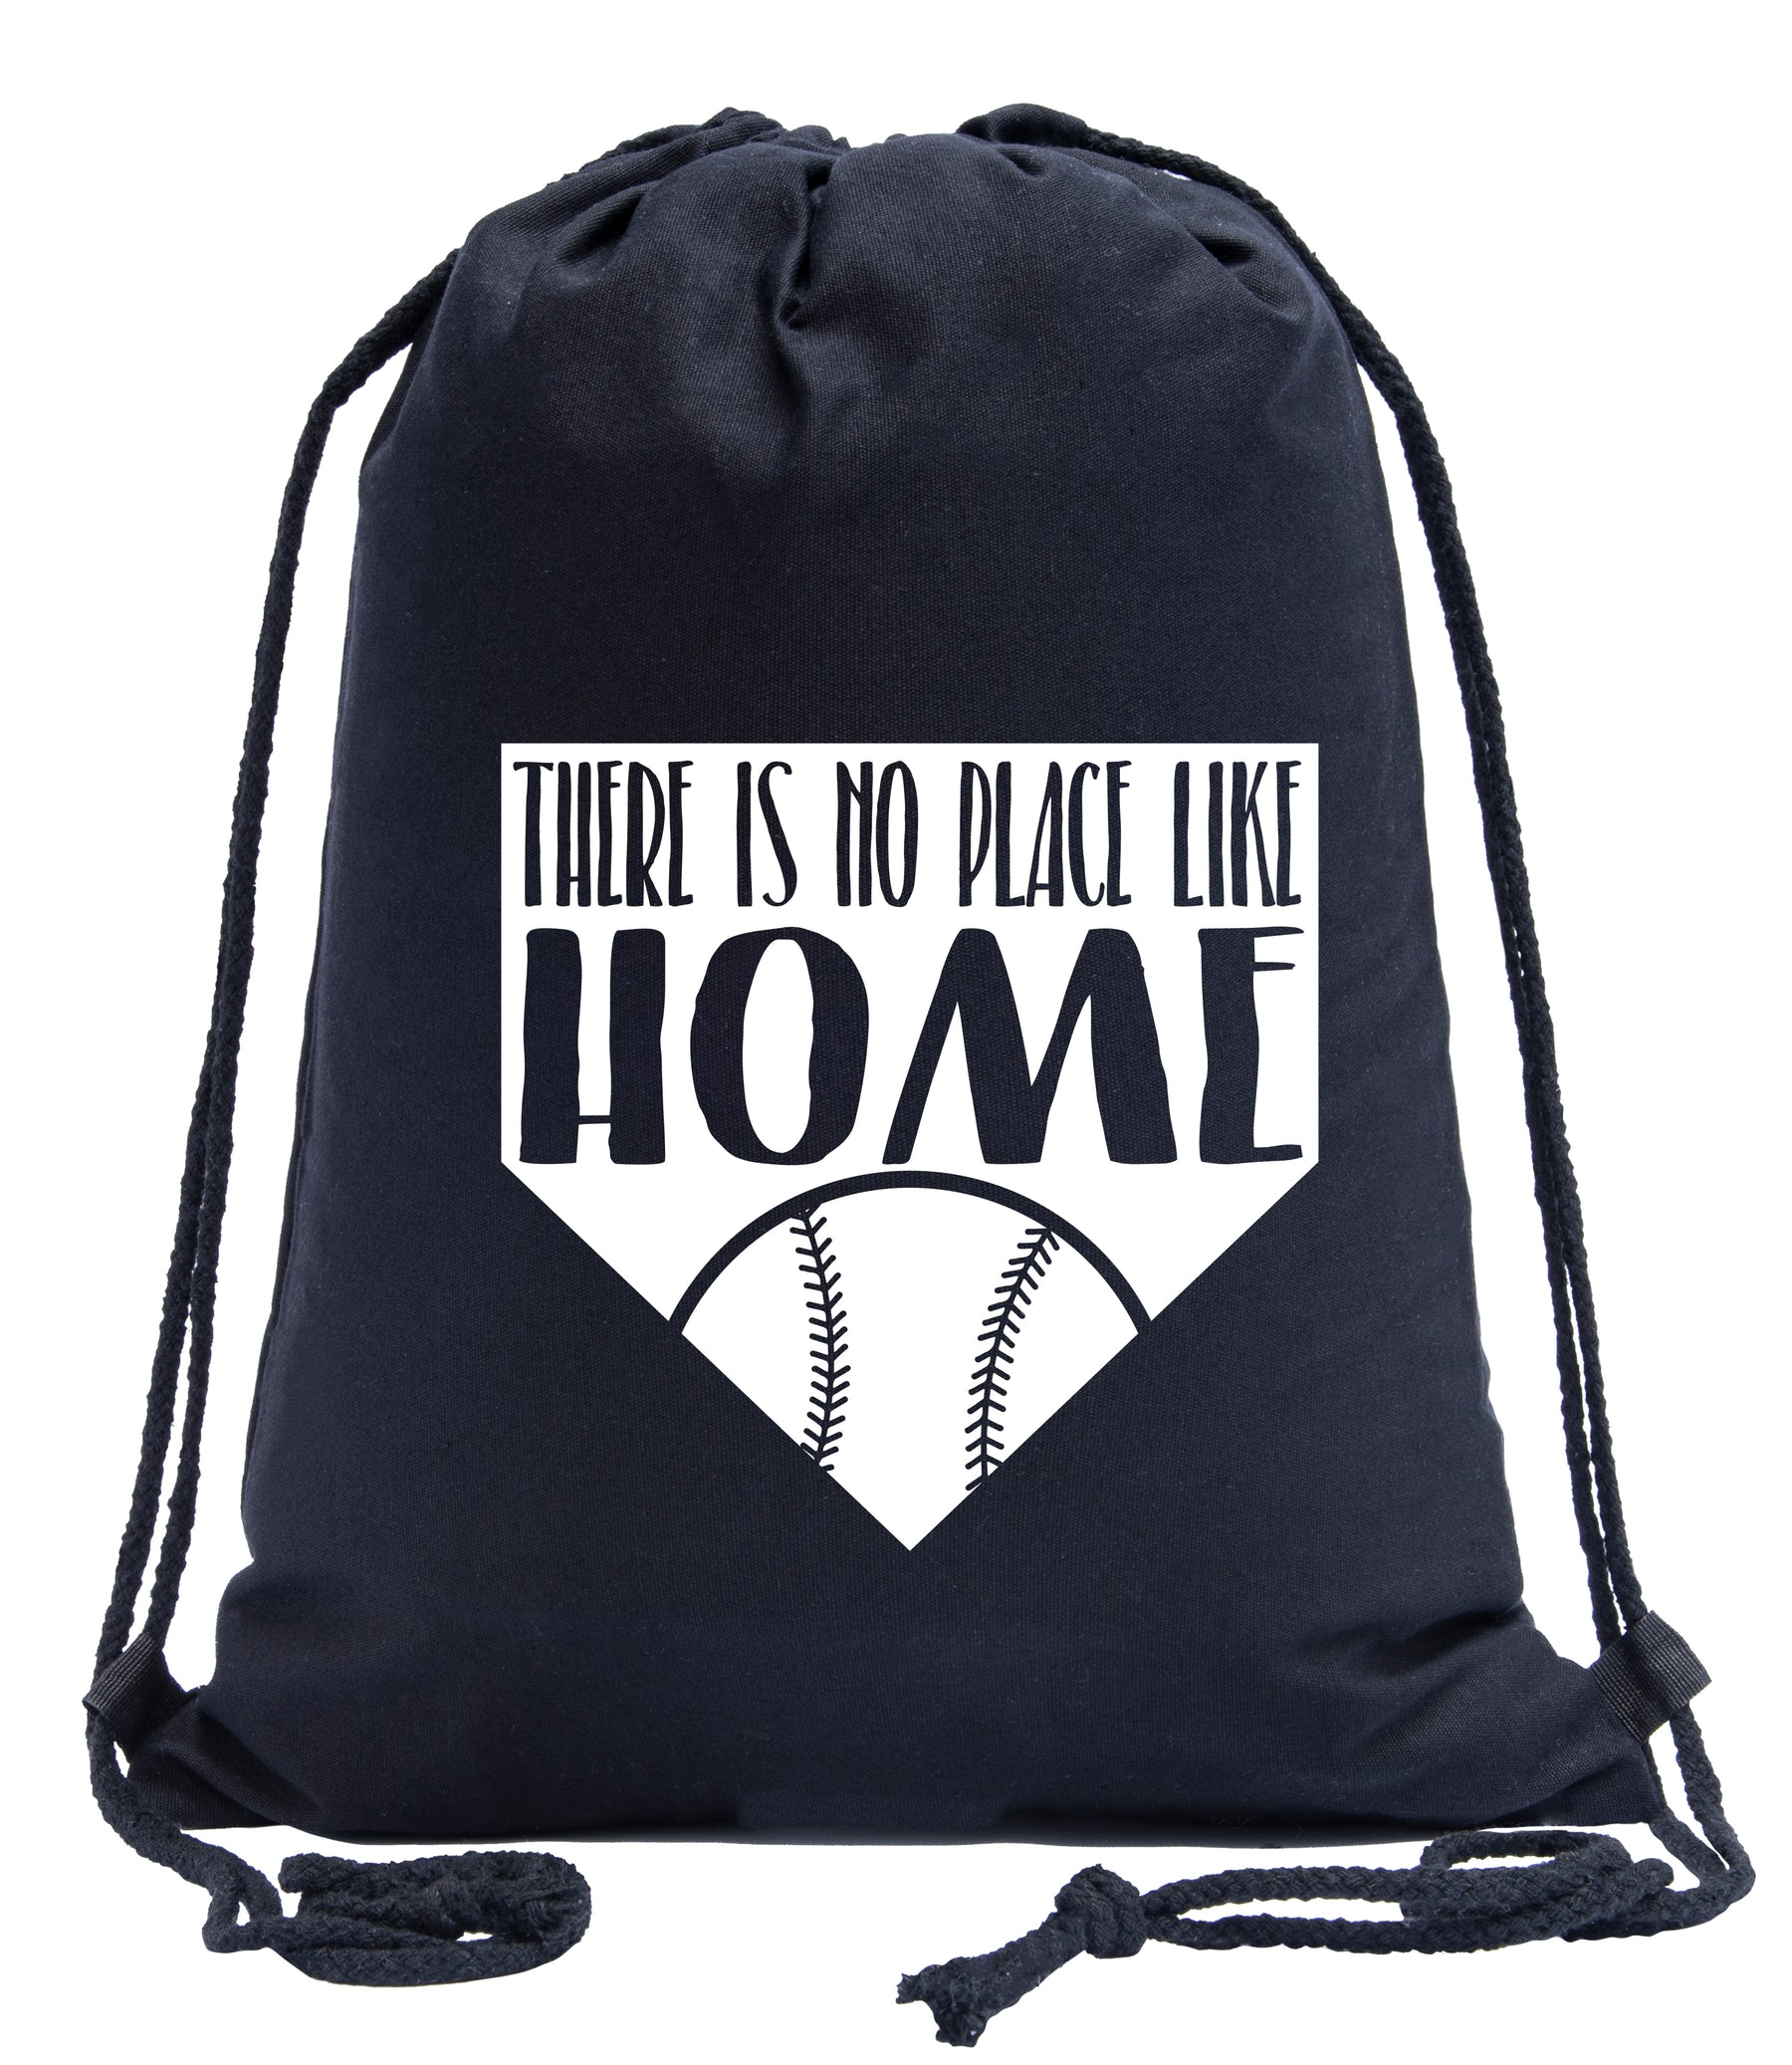 There Is No Place Like Home - Plate and Ball Cotton Drawstring Bag